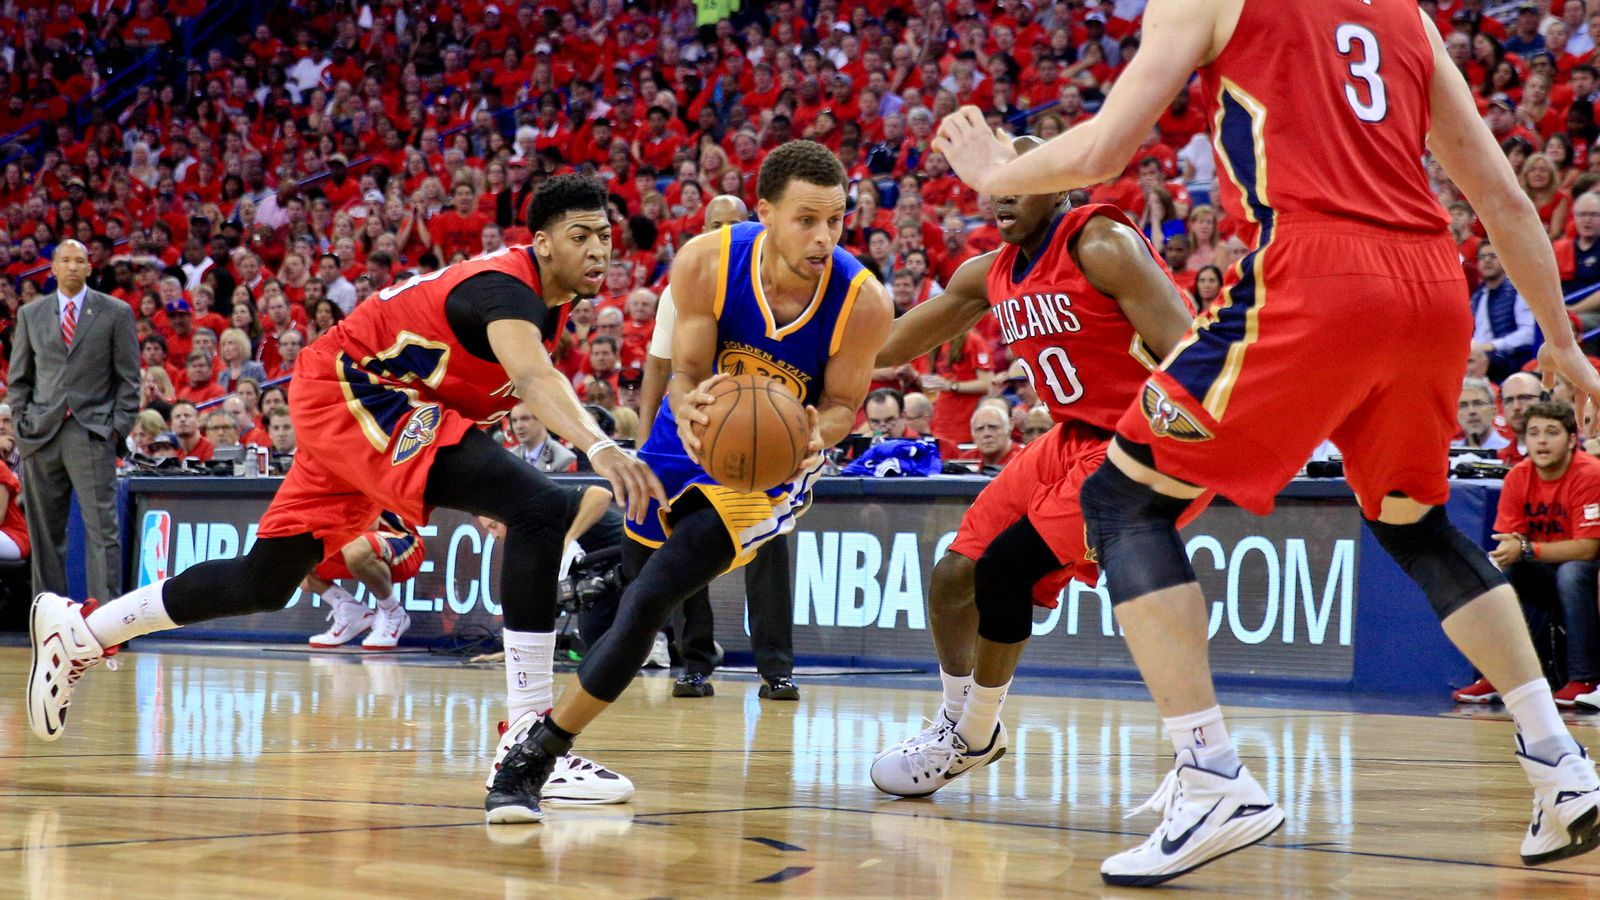 Warriors Vs Pelicans Final Score Nba Playoffs 2015 3